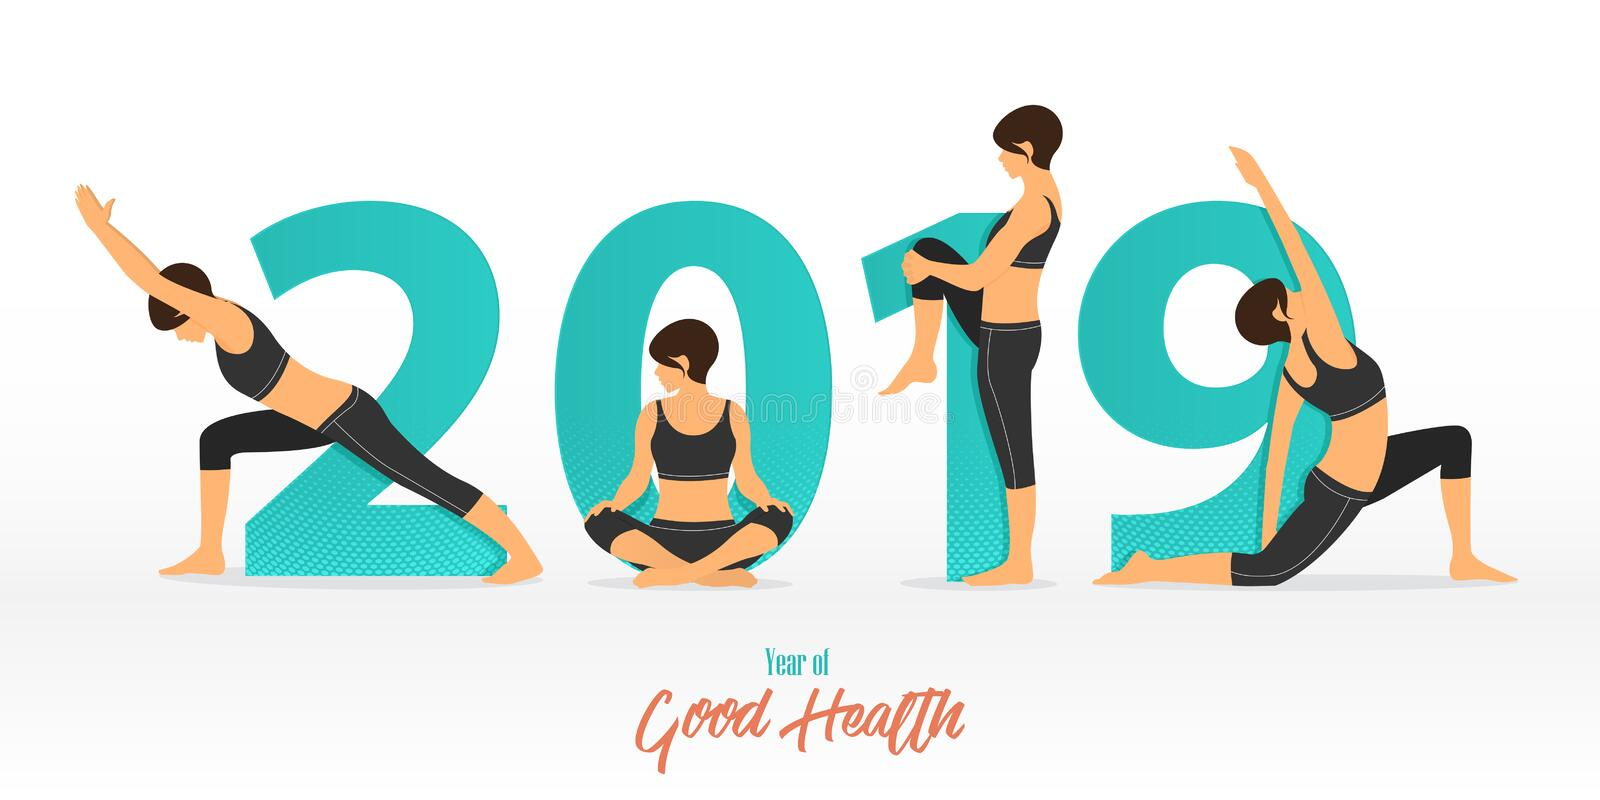 Happy New Year 2019 banner with yoga poses. Year of good health. Banner design template for New Year decoration in Yoga Concept. royalty free illustration